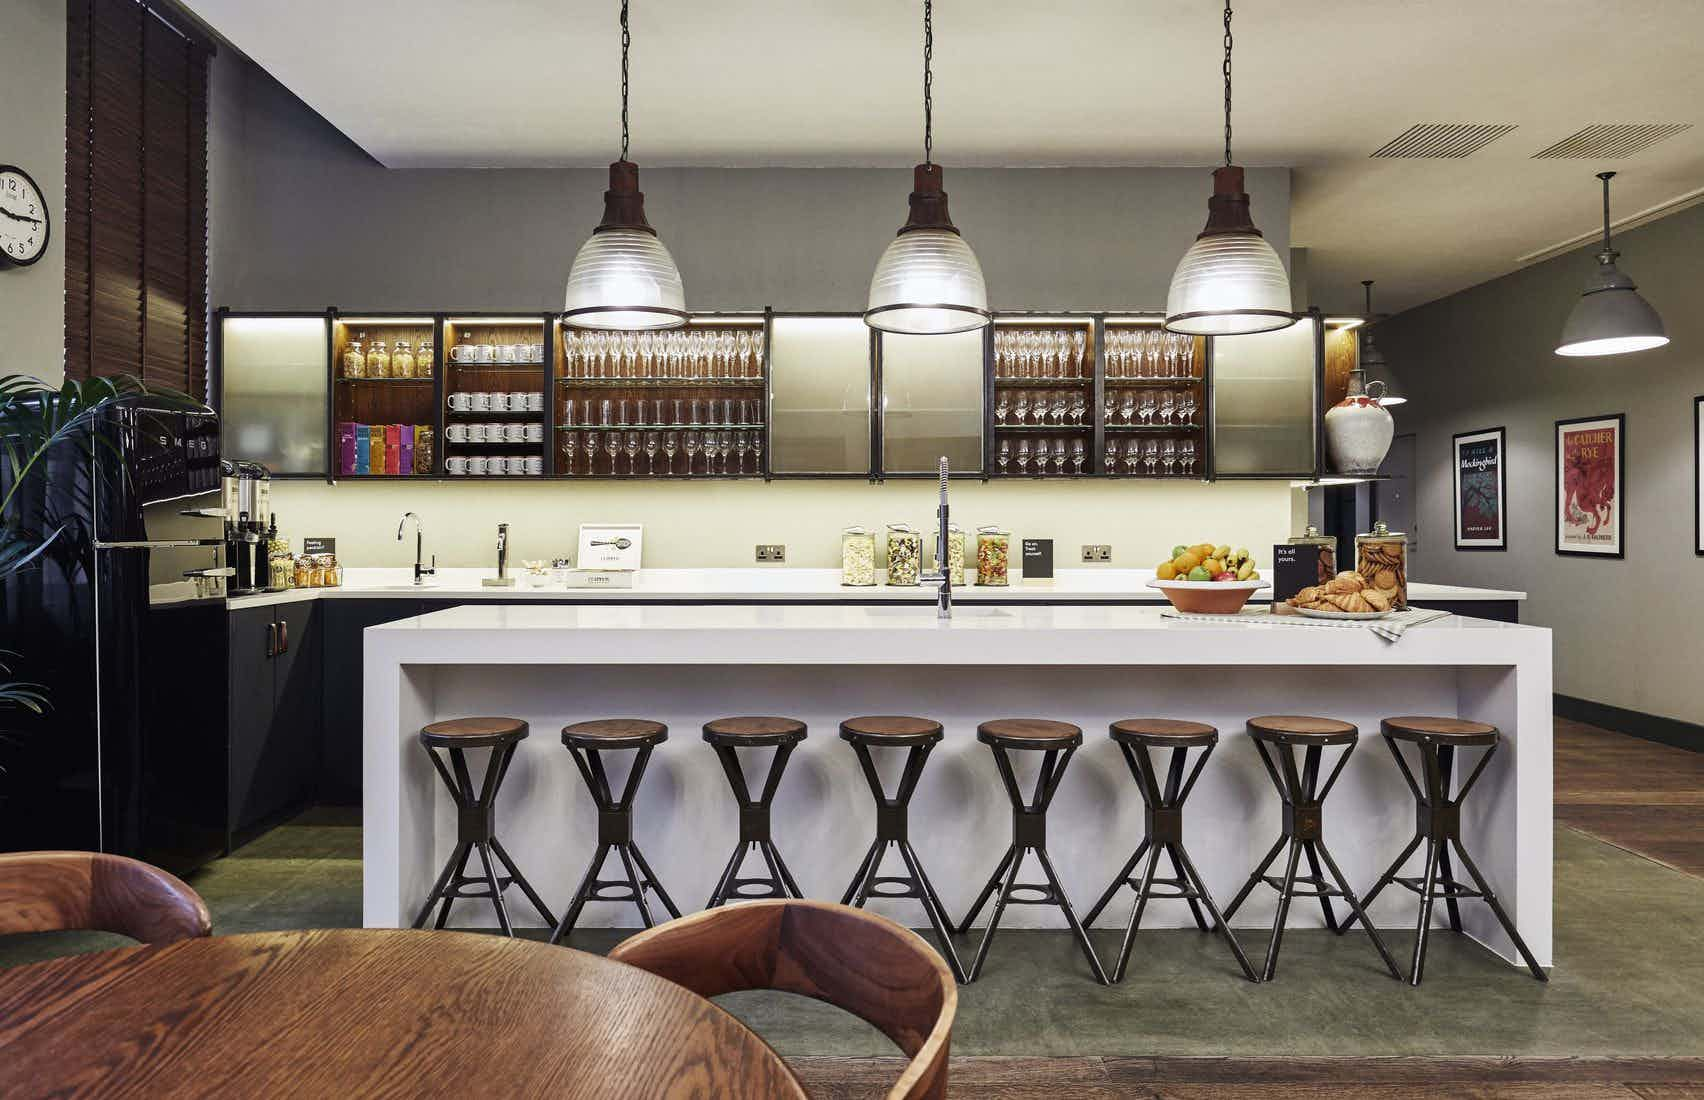 The Apartment - Exclusive Hire, The Hoxton Holborn